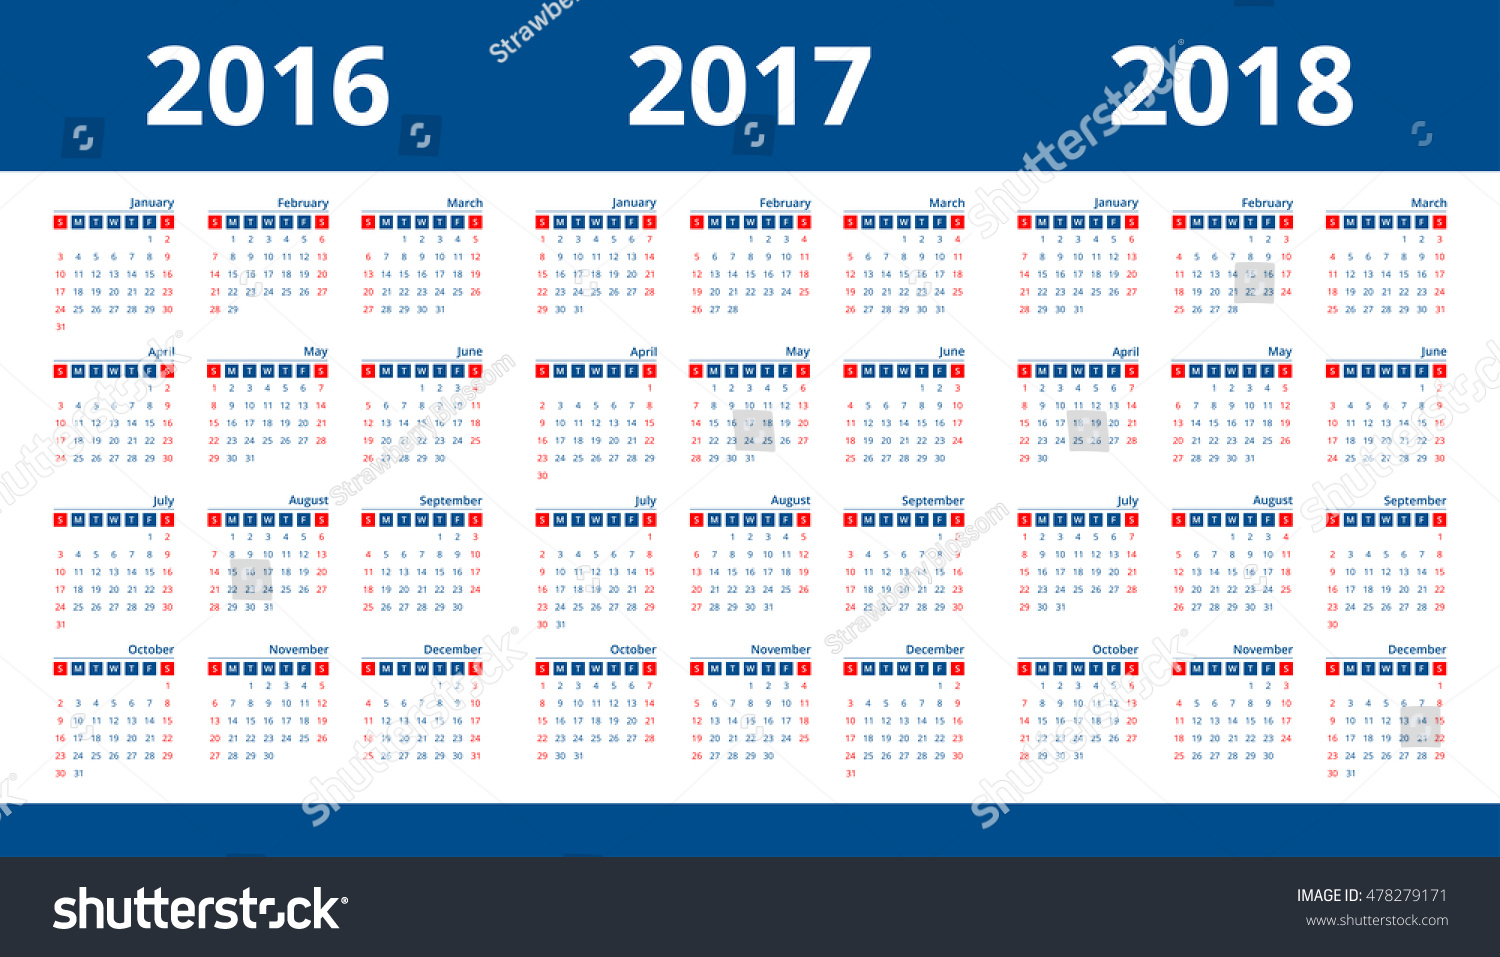 calendar 2017 2018 2016 layout template stock vector royalty free